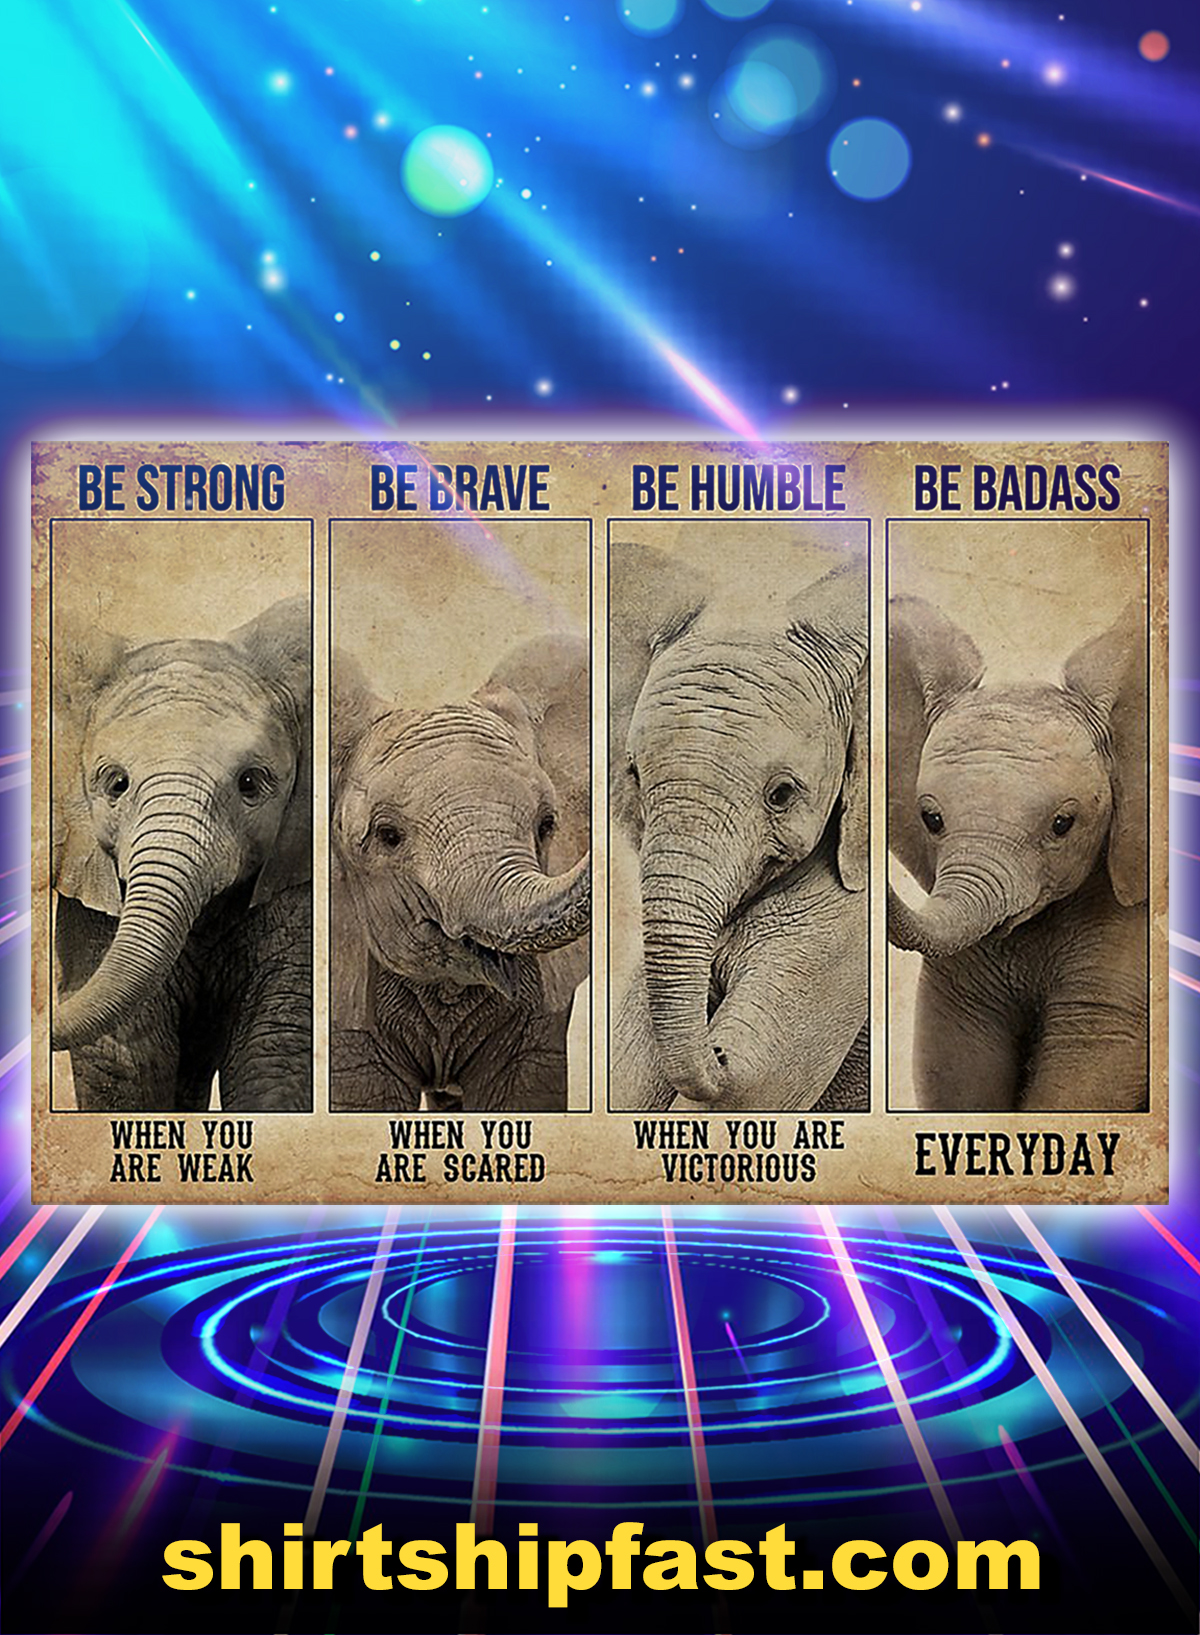 Elephant be strong be brave be humble be badass poster - A1